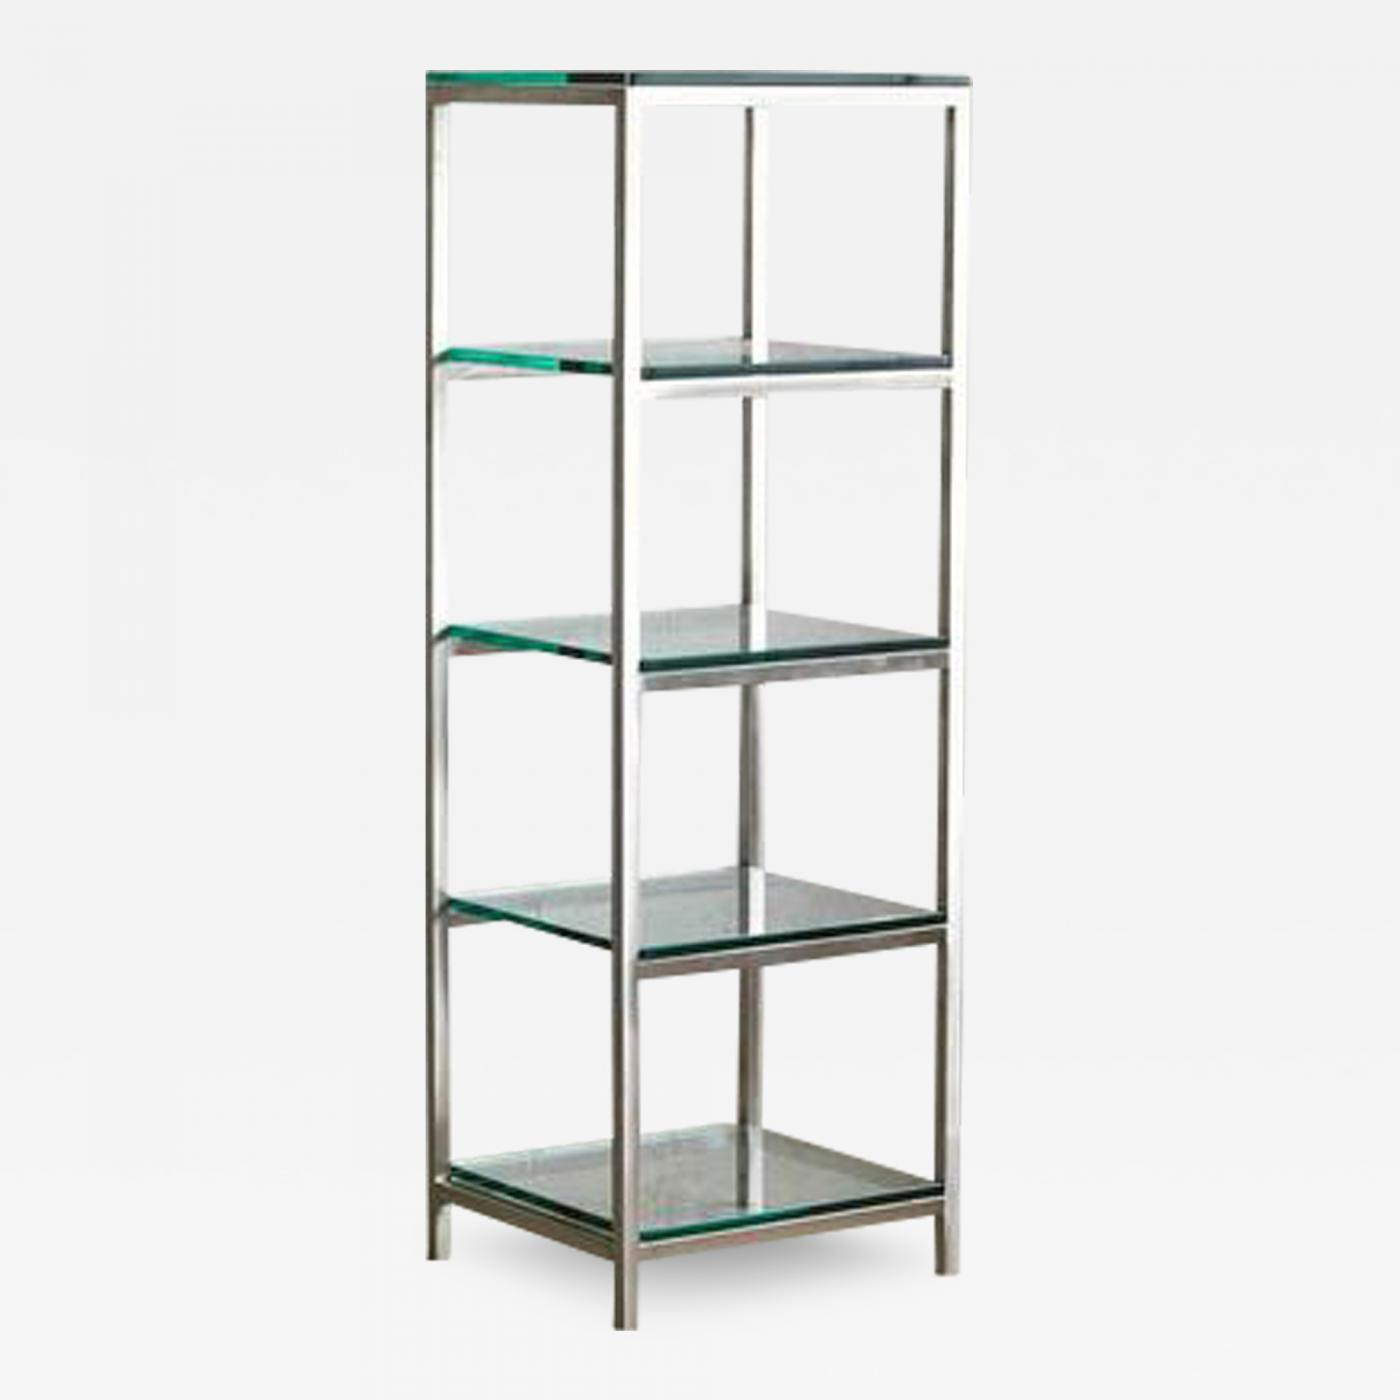 Amazing Modern Brushed Aluminium Etagere Or Display With Five Thick Glass Shelves Home Interior And Landscaping Ferensignezvosmurscom